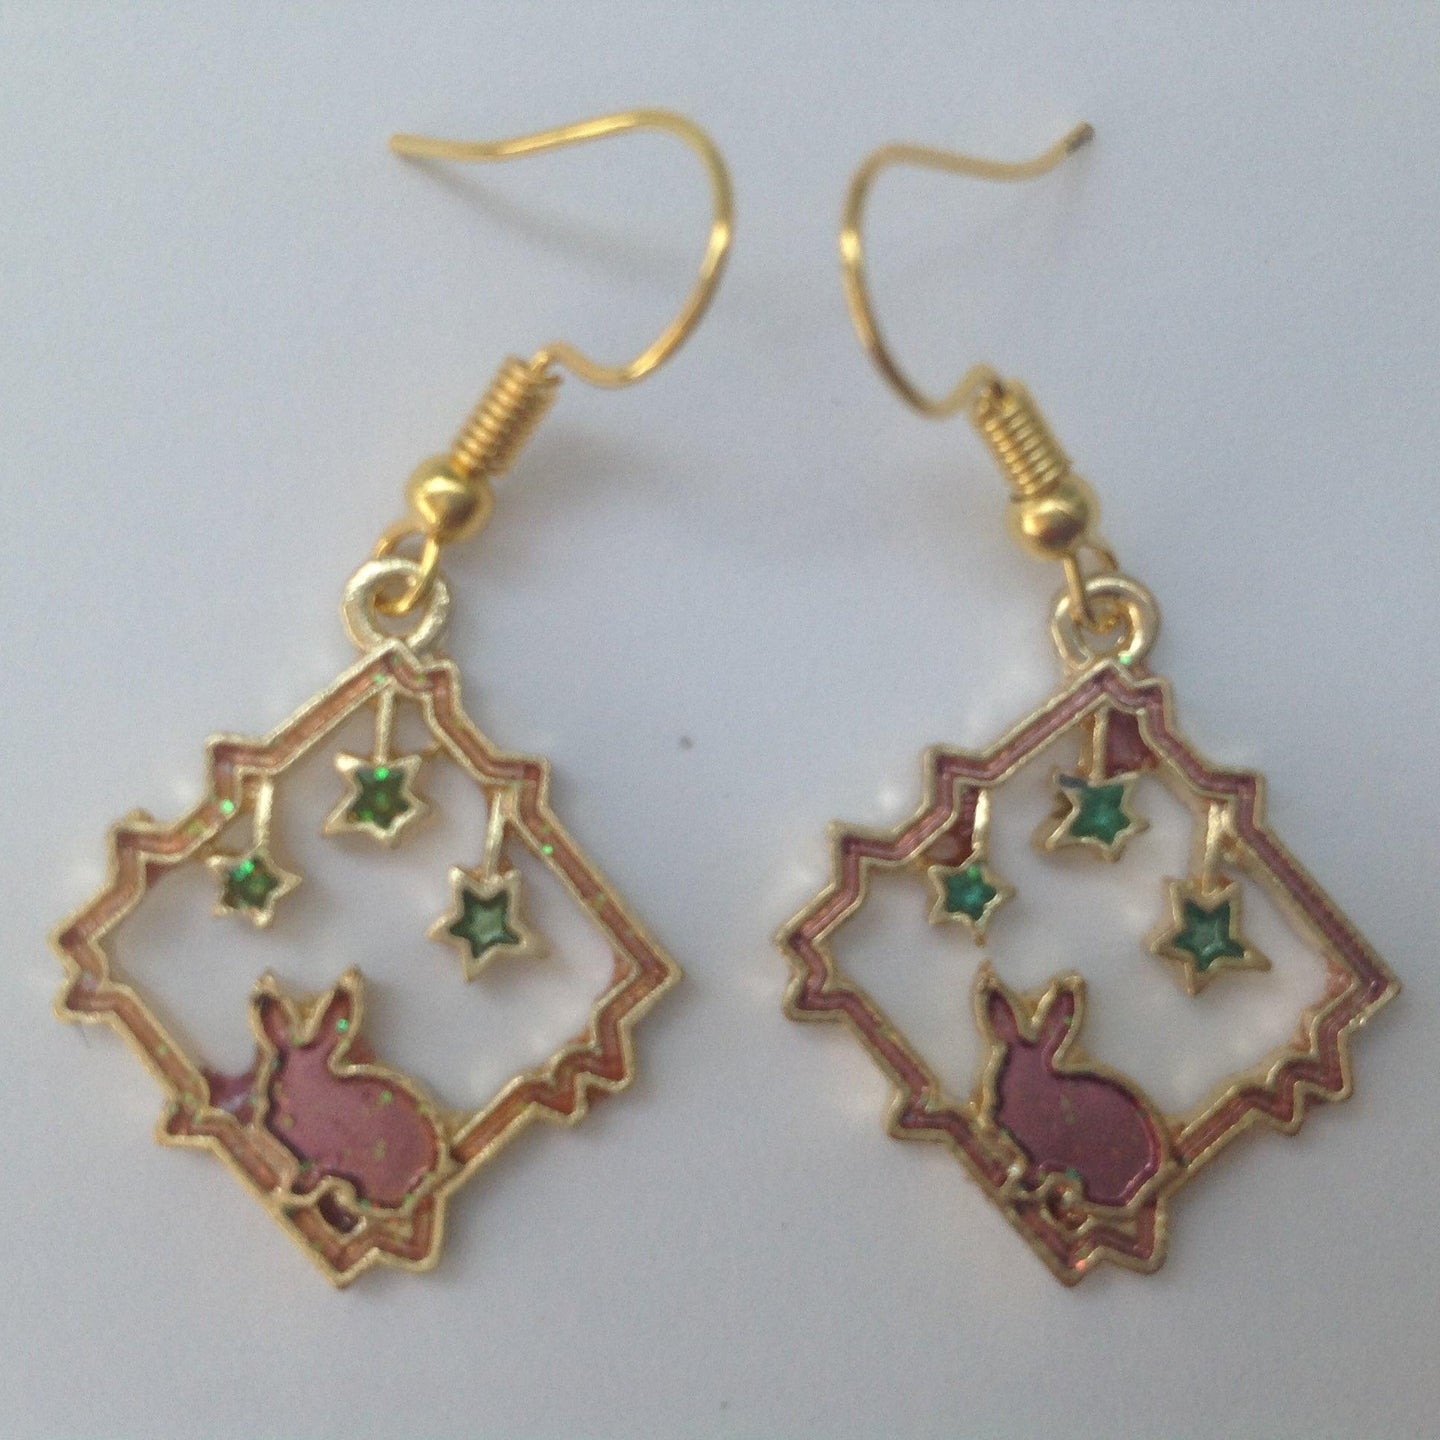 Starry Night Bunny Earrings